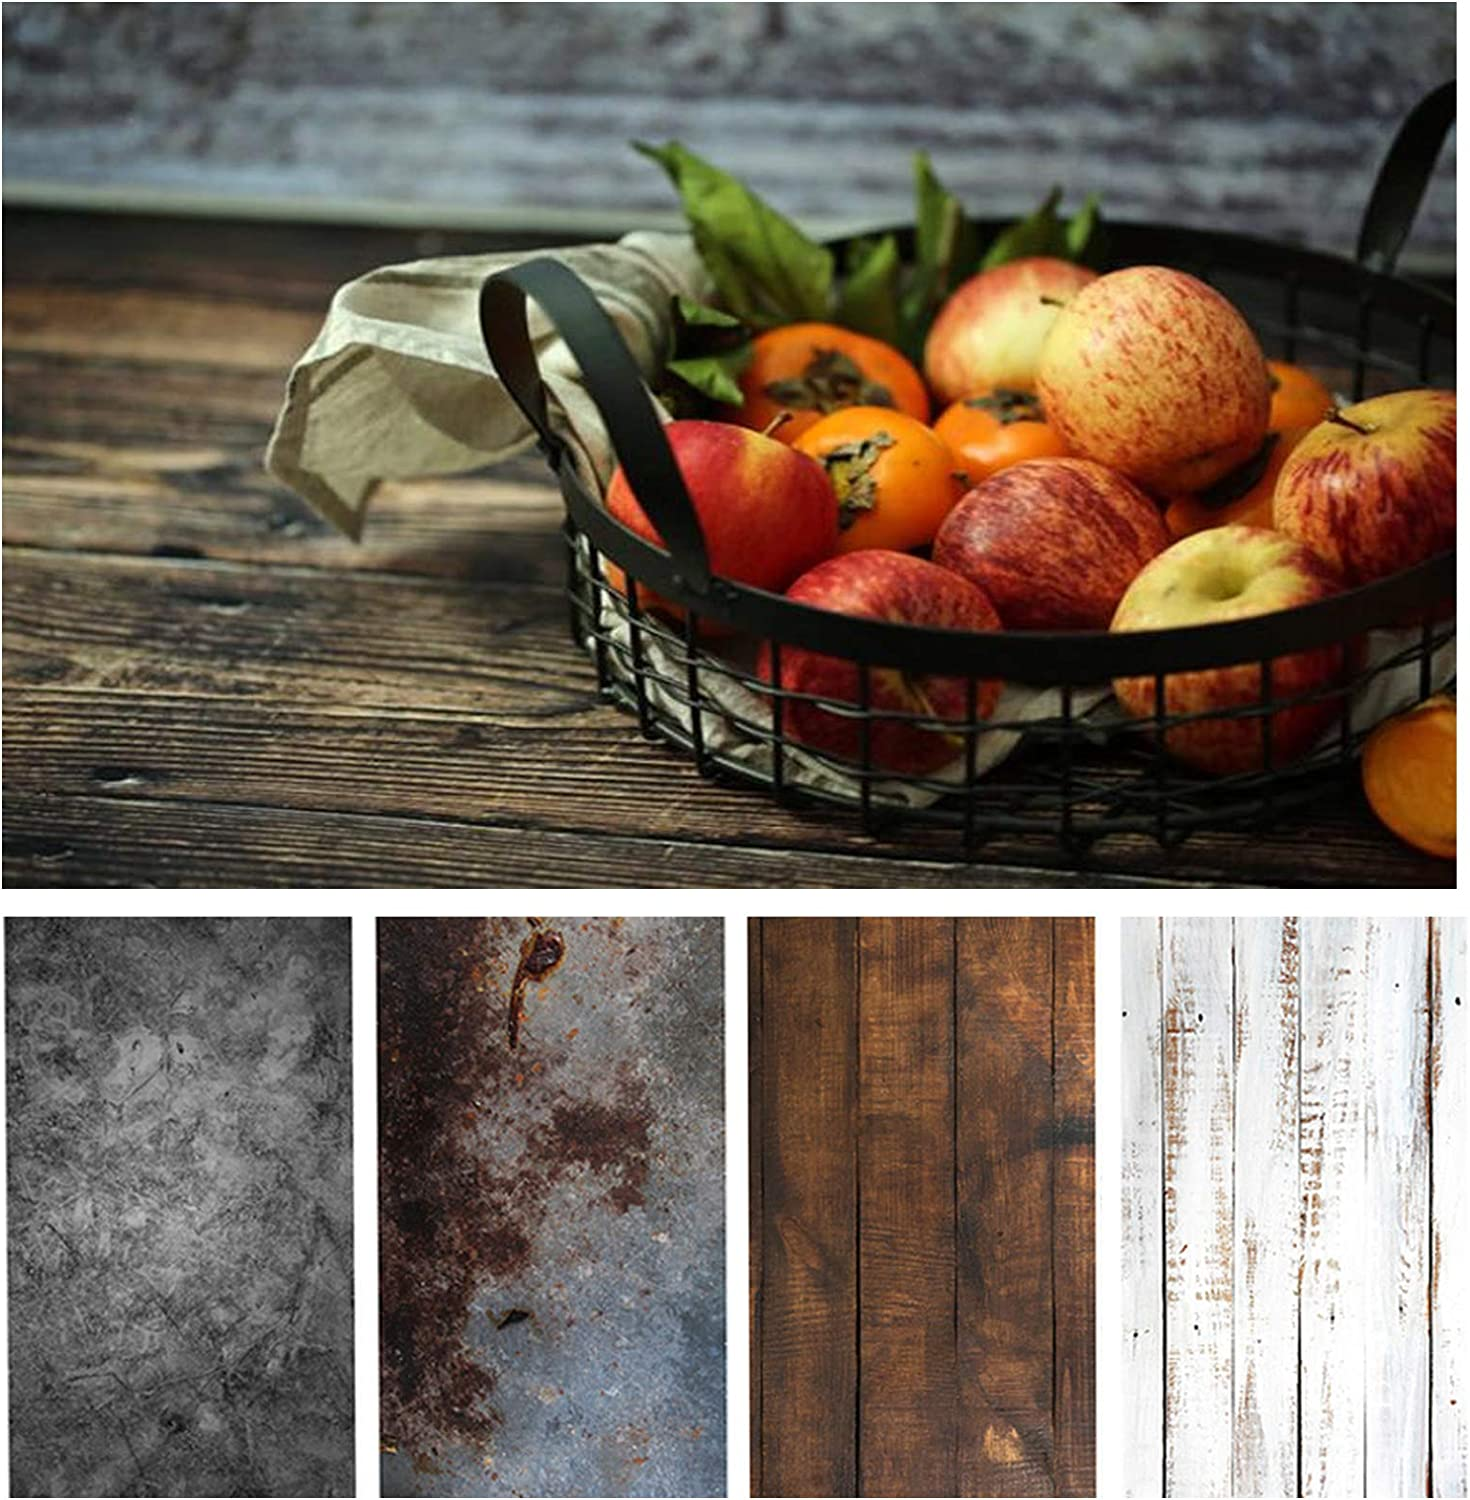 Bcolorpic Wood Photography Backdrop Paper 4 Pack Kit 22x34Inch/ 56x86cm Photo Background Flat Lay Double Sided Cement Wall for Food Product Jewelry Tabletop Pictures Props, 8 Pattern